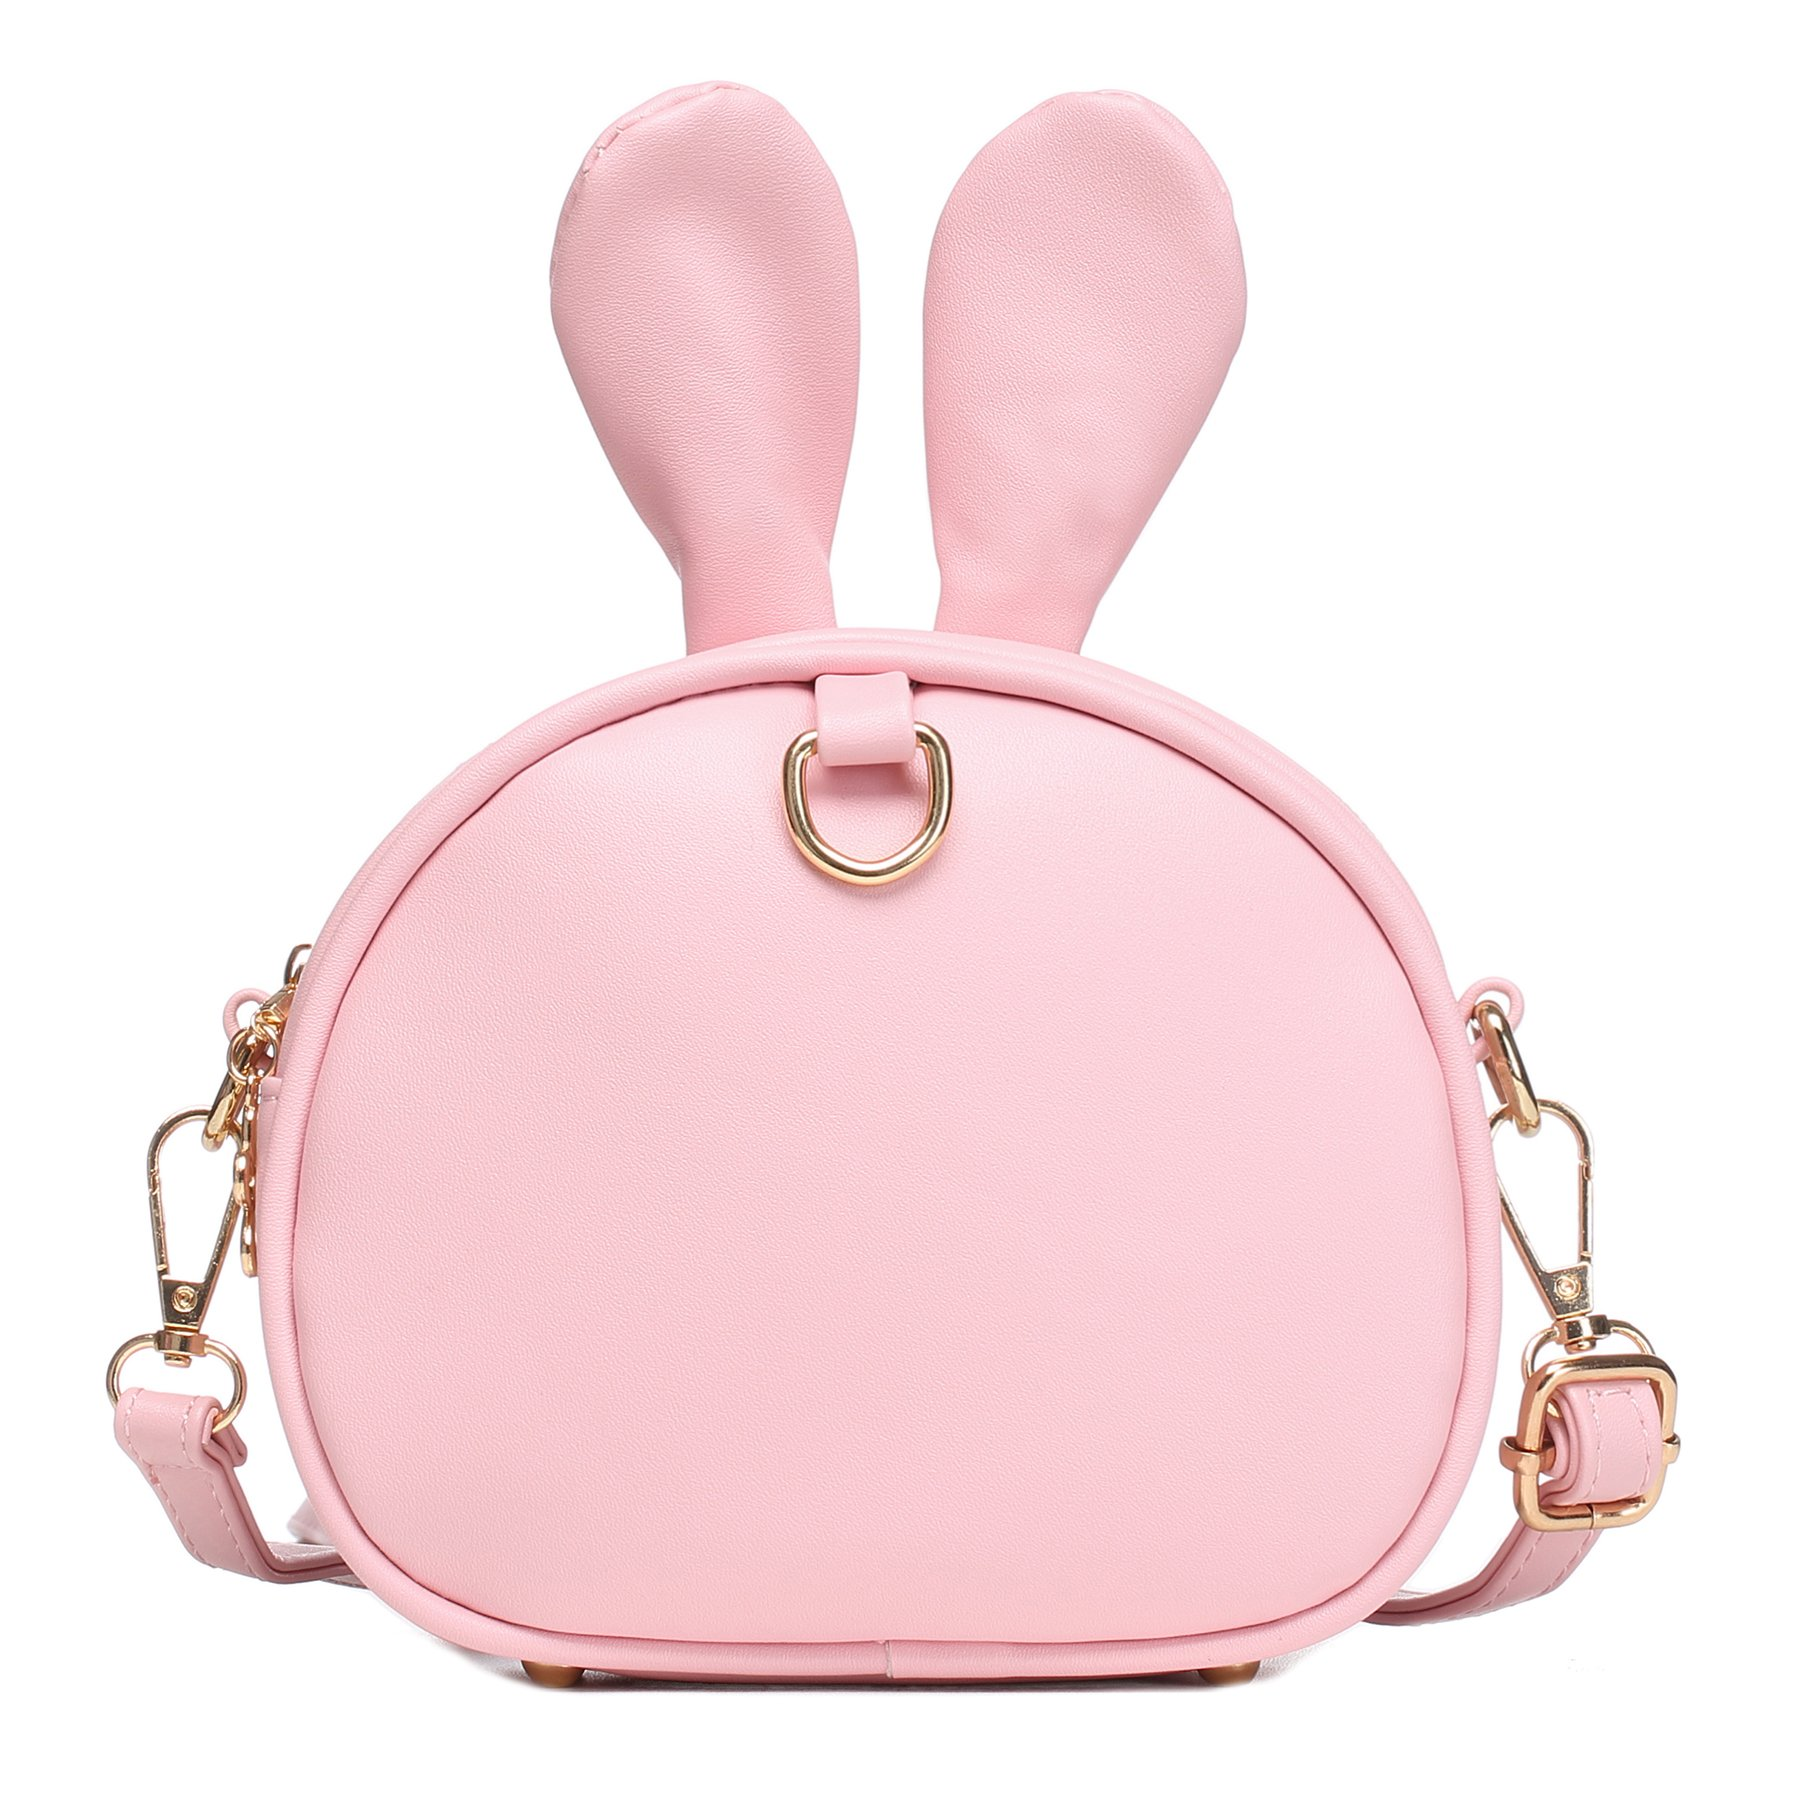 CMK Trendy Kids My First Purse for Toddler Kids Girls Cute Shoulder Bag Messenger Bags with Bunny Ear and Double Slide Zipper Novelty Birthday Gift (82011_Pink) by CMK Trendy Kids (Image #6)